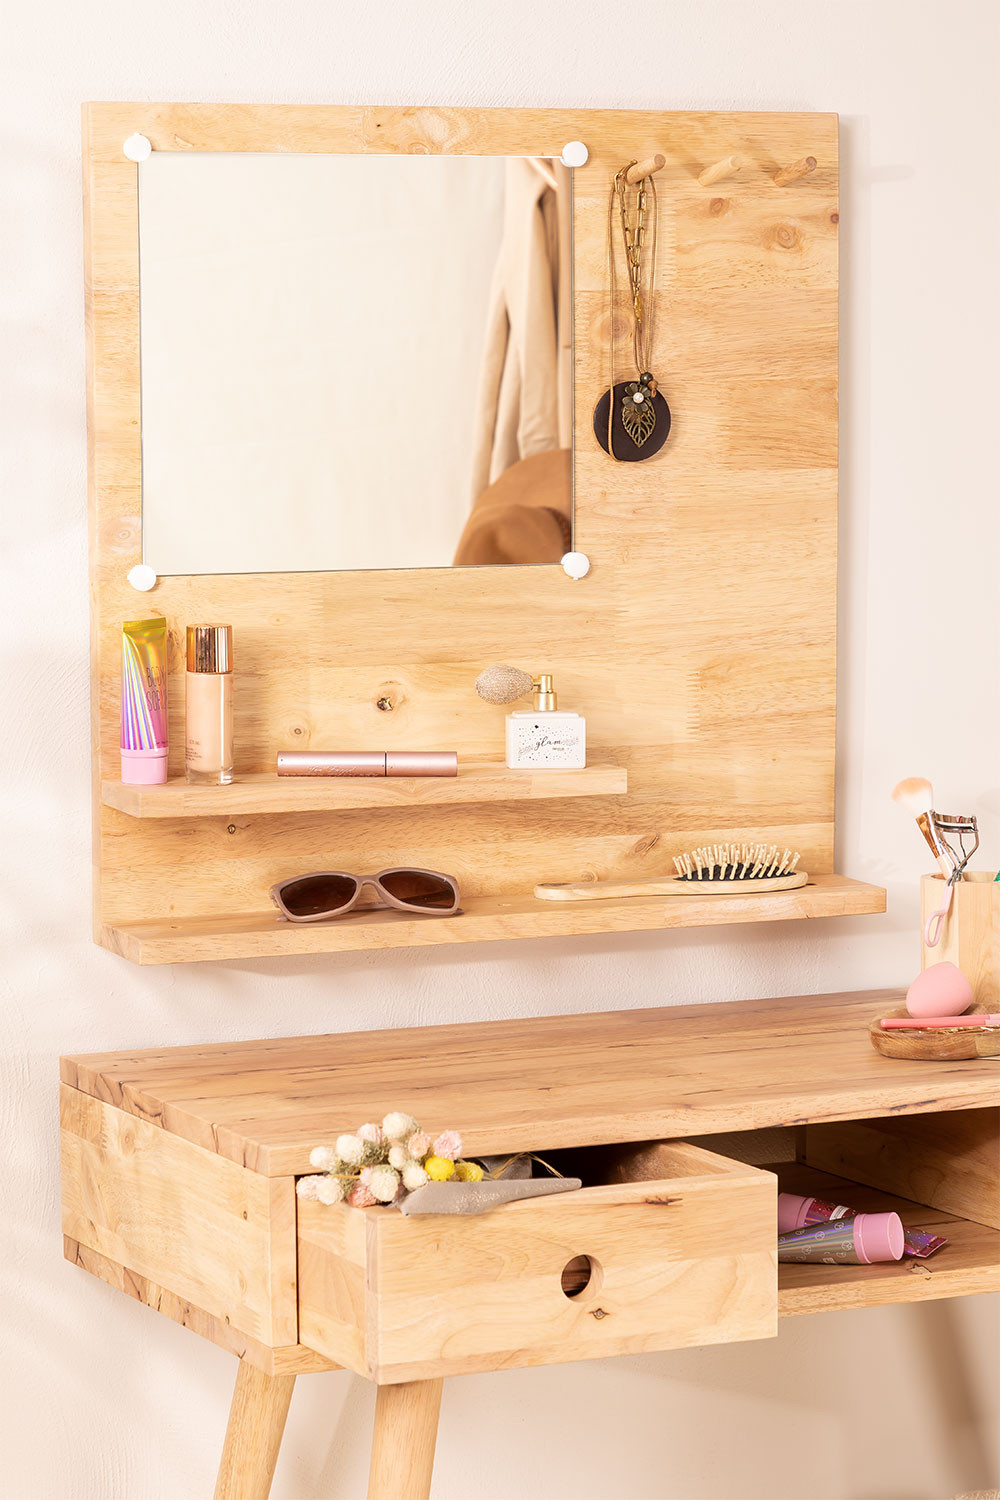 Wall Mirror with Wooden Shelf (60x60 cm) Arlan, gallery image 1